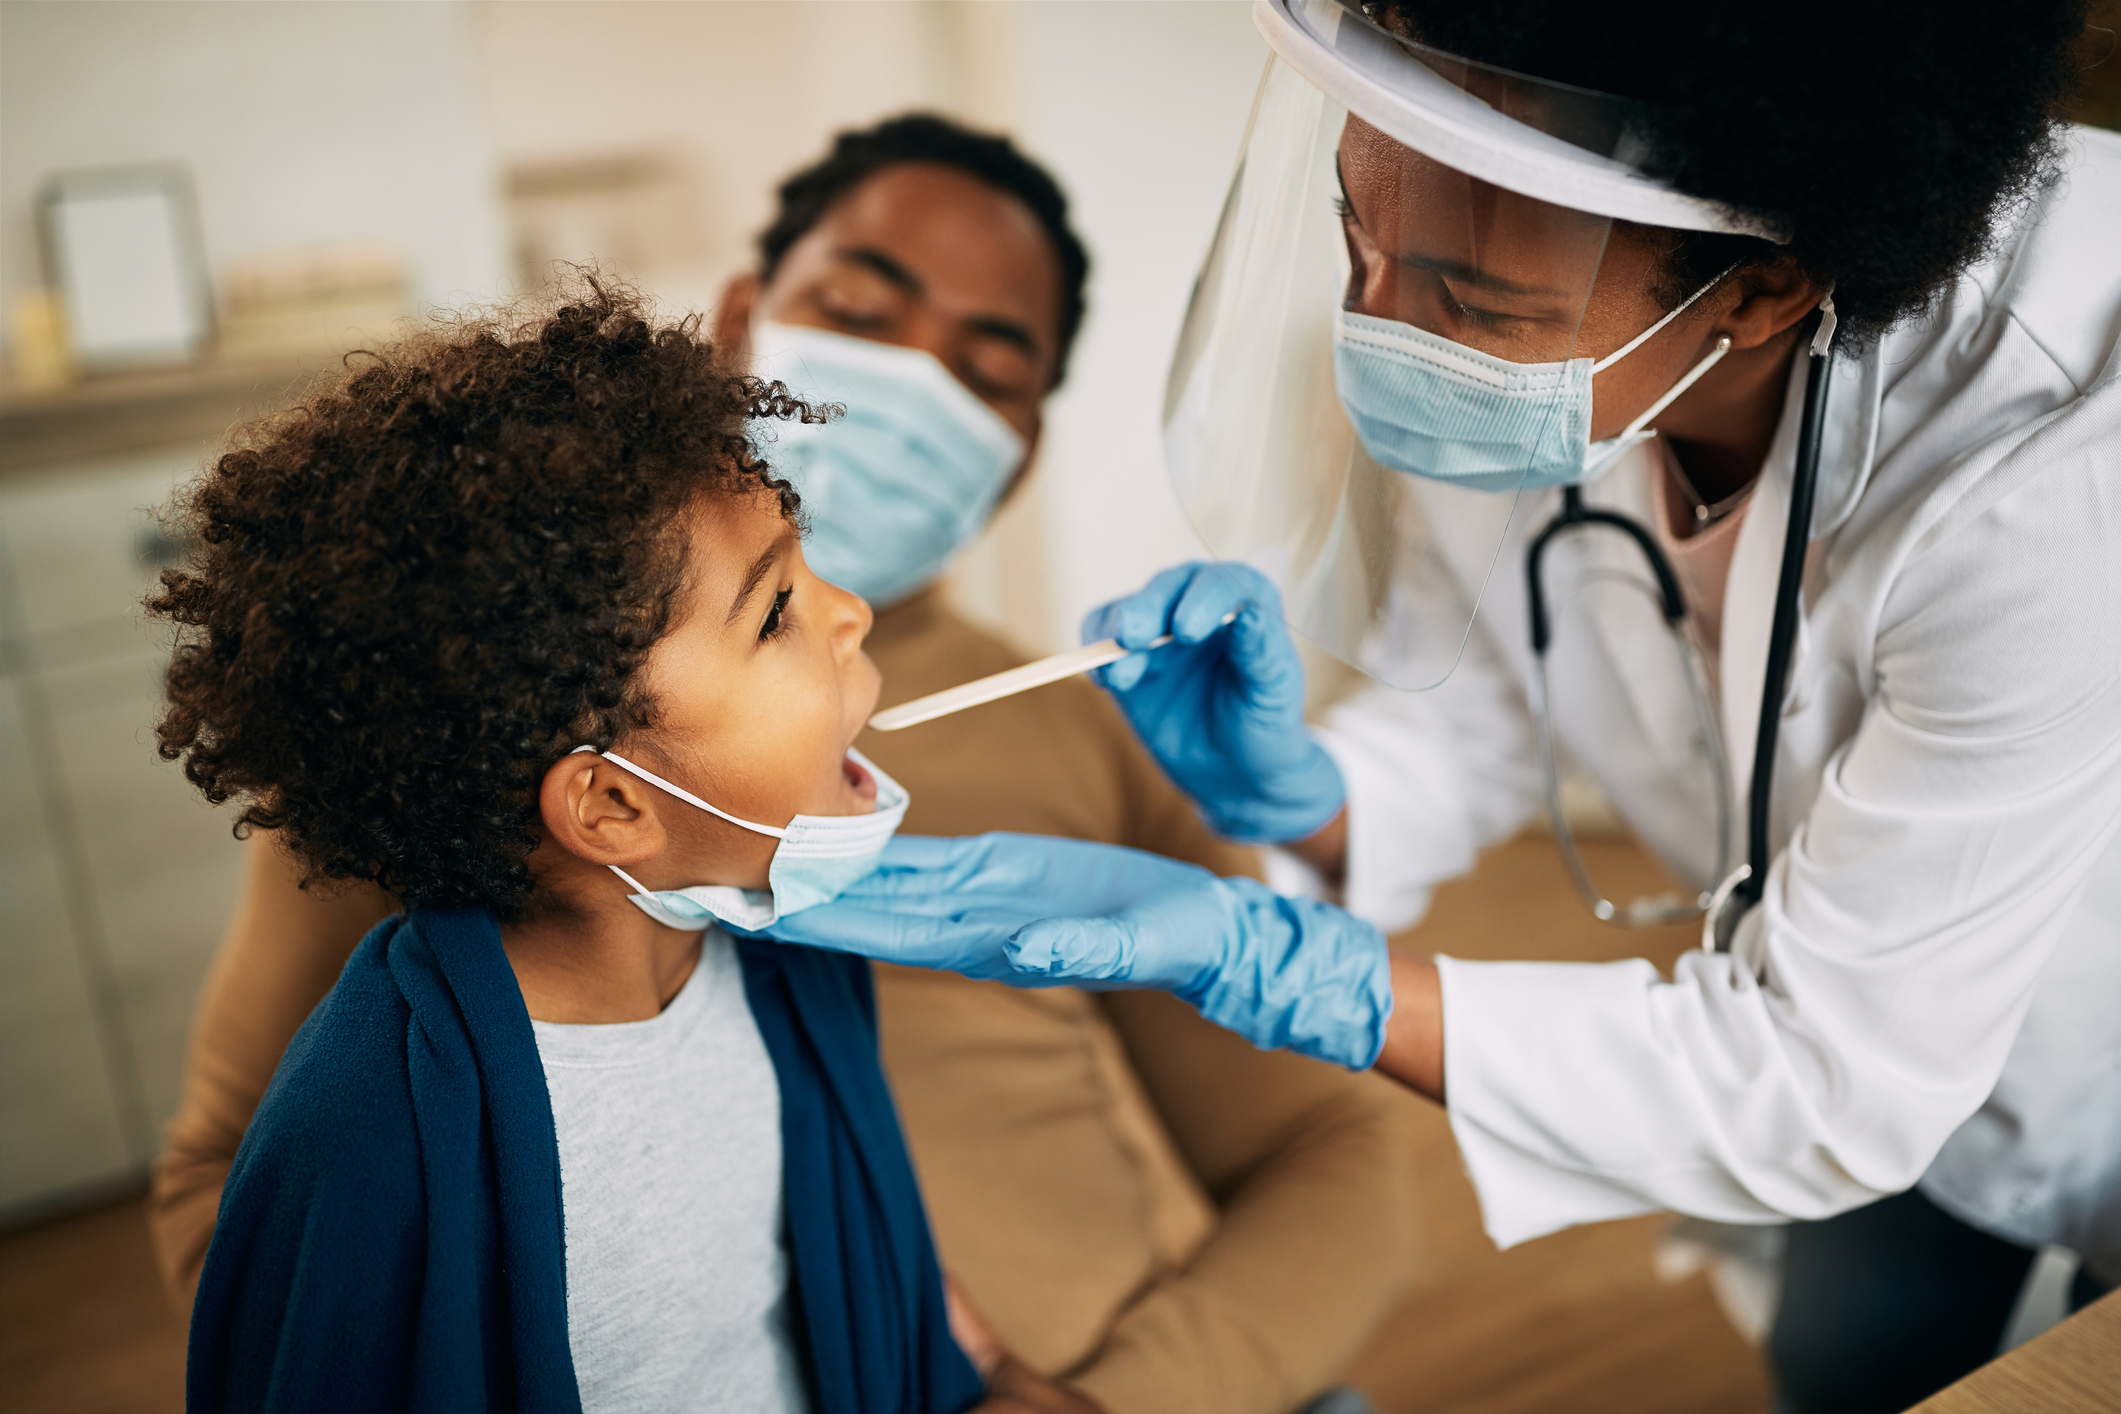 doctor with face mask examining boy's throat during a home visit.